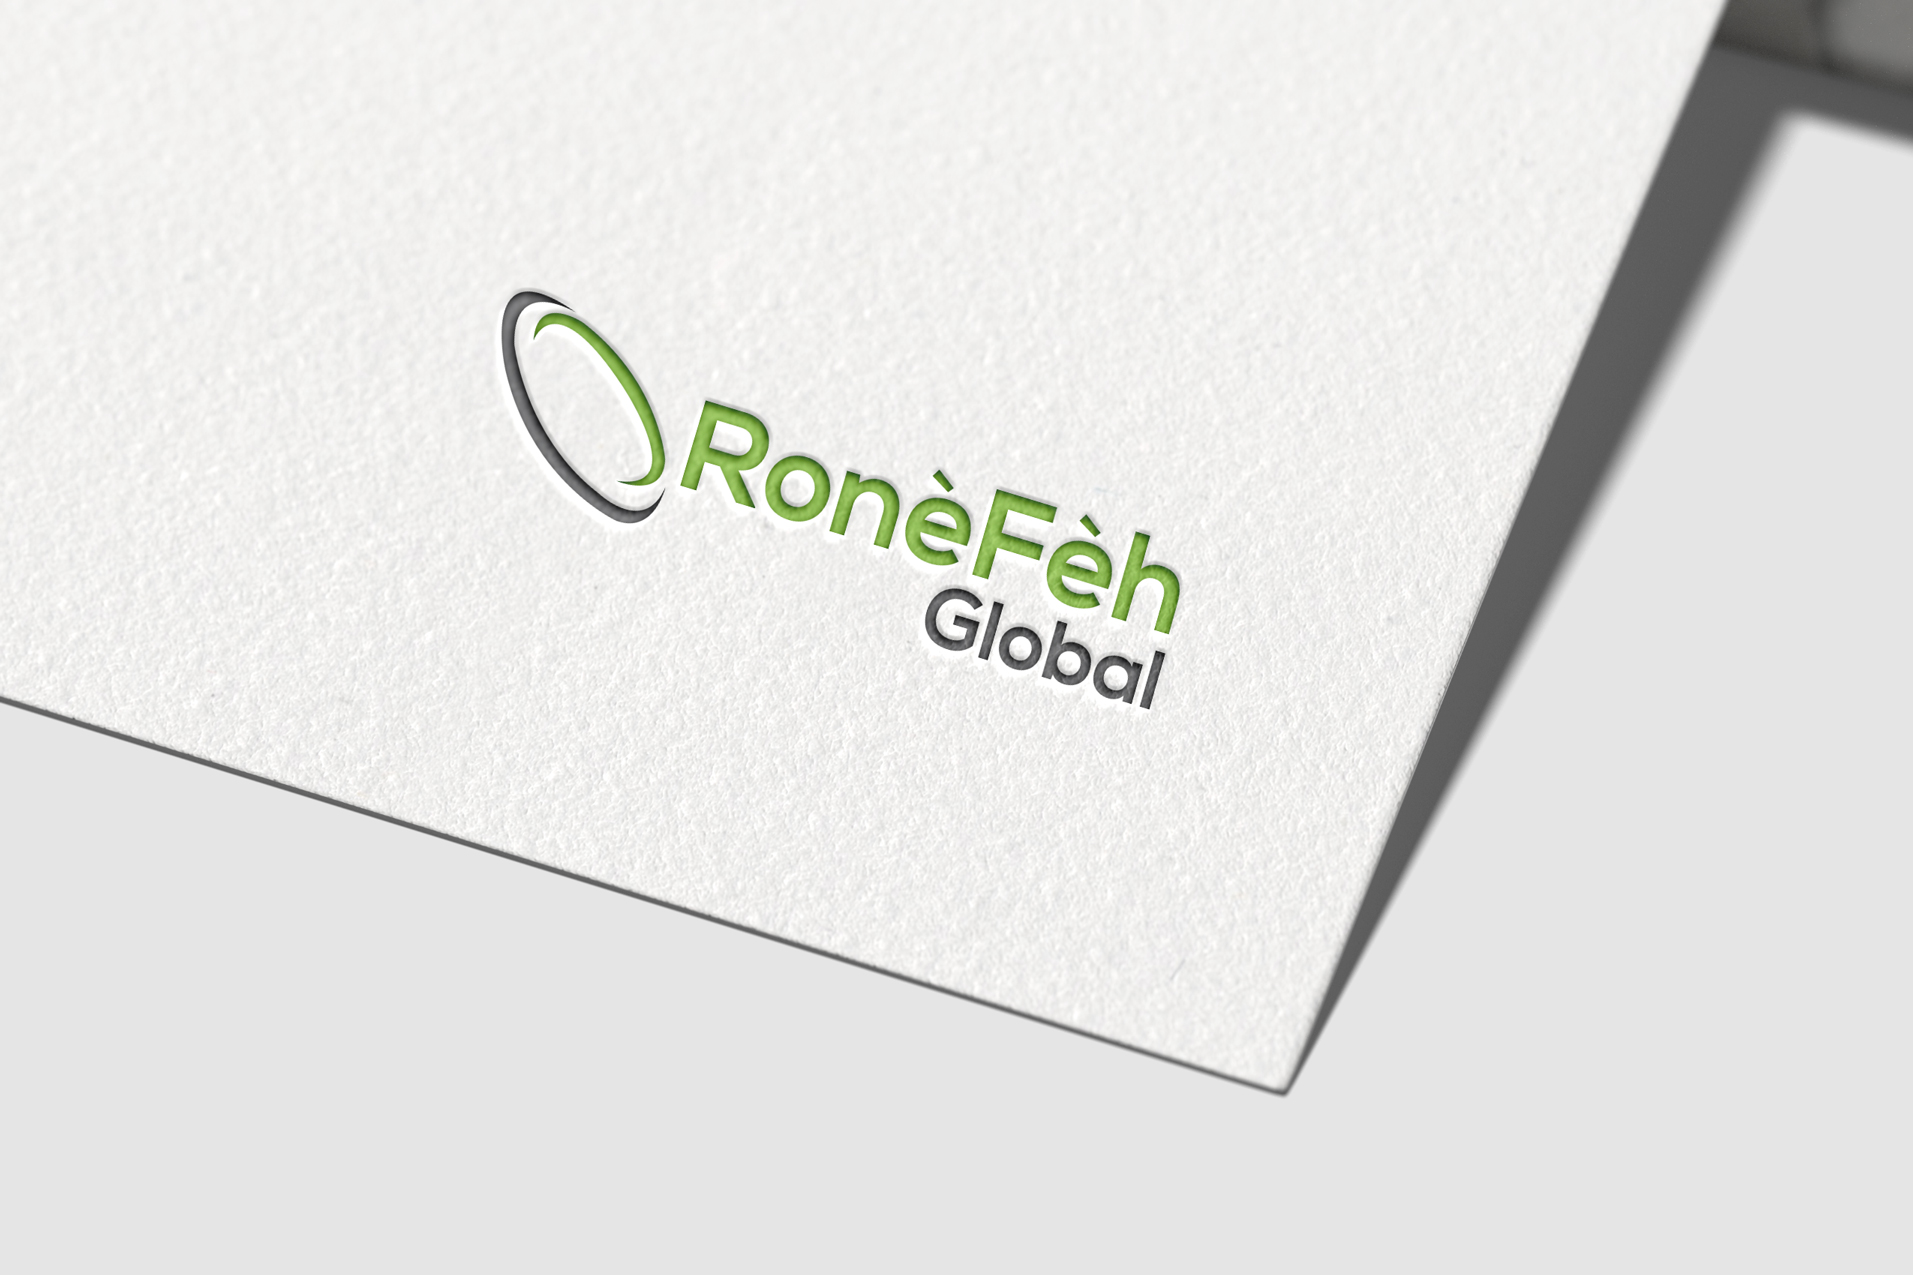 Ronefeh-Global-logo on paper